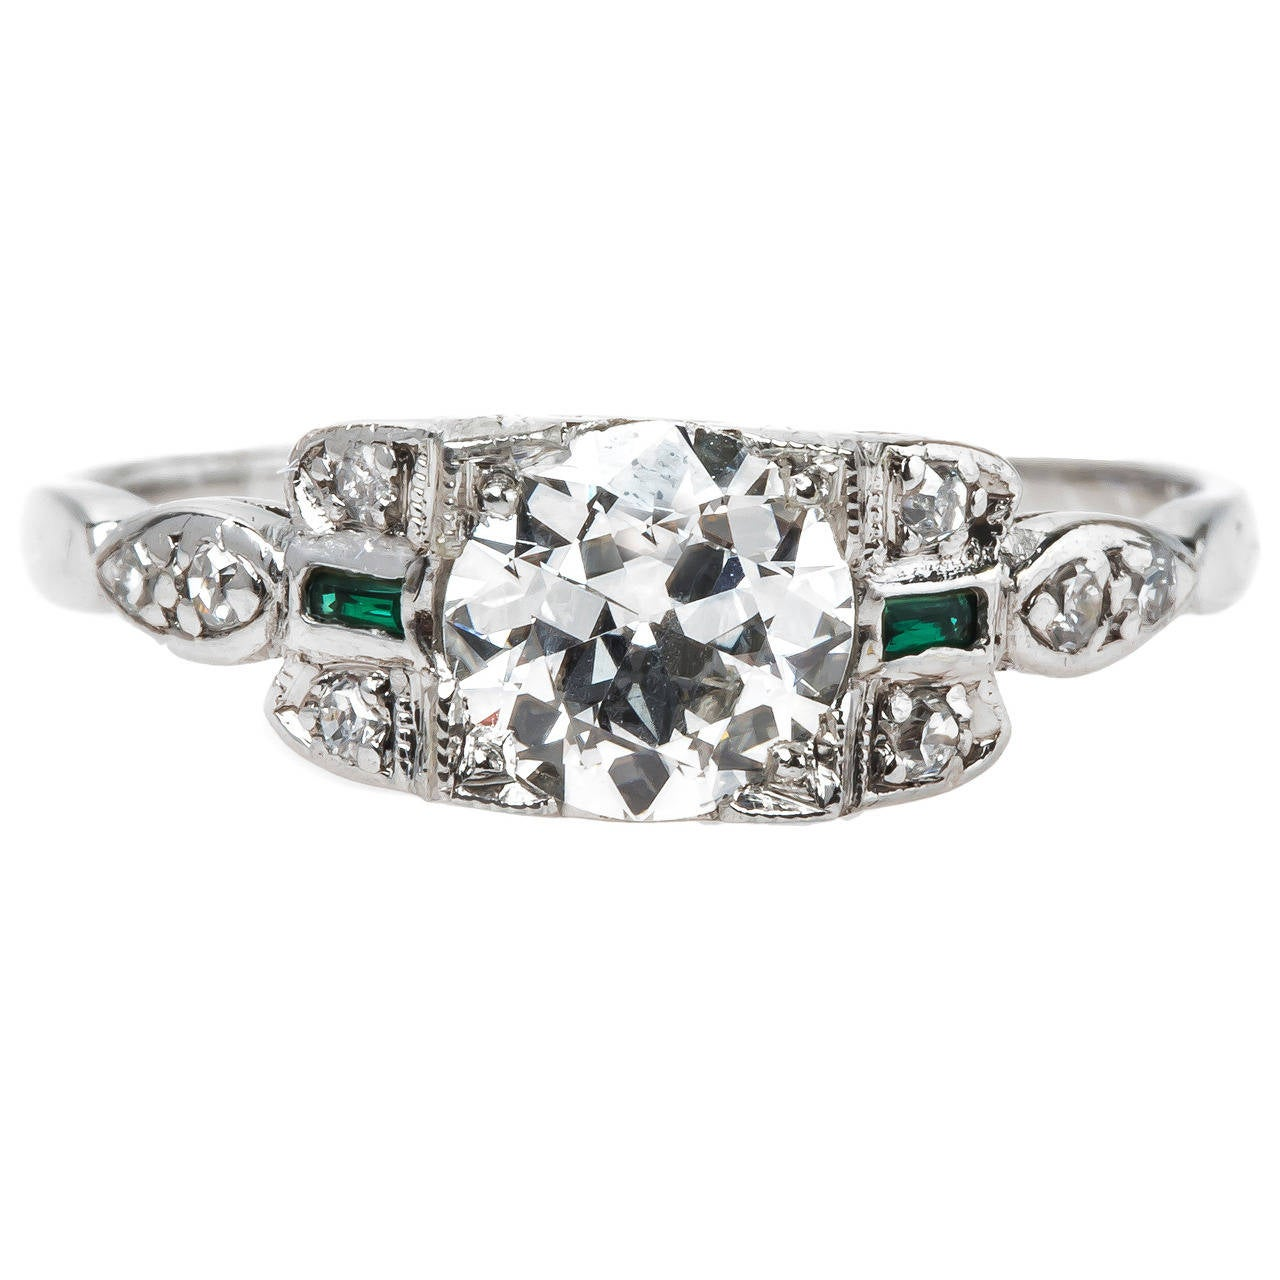 Art Deco GIA Cert Diamond Platinum Ring with Synthetic Emerald Accents at 1st